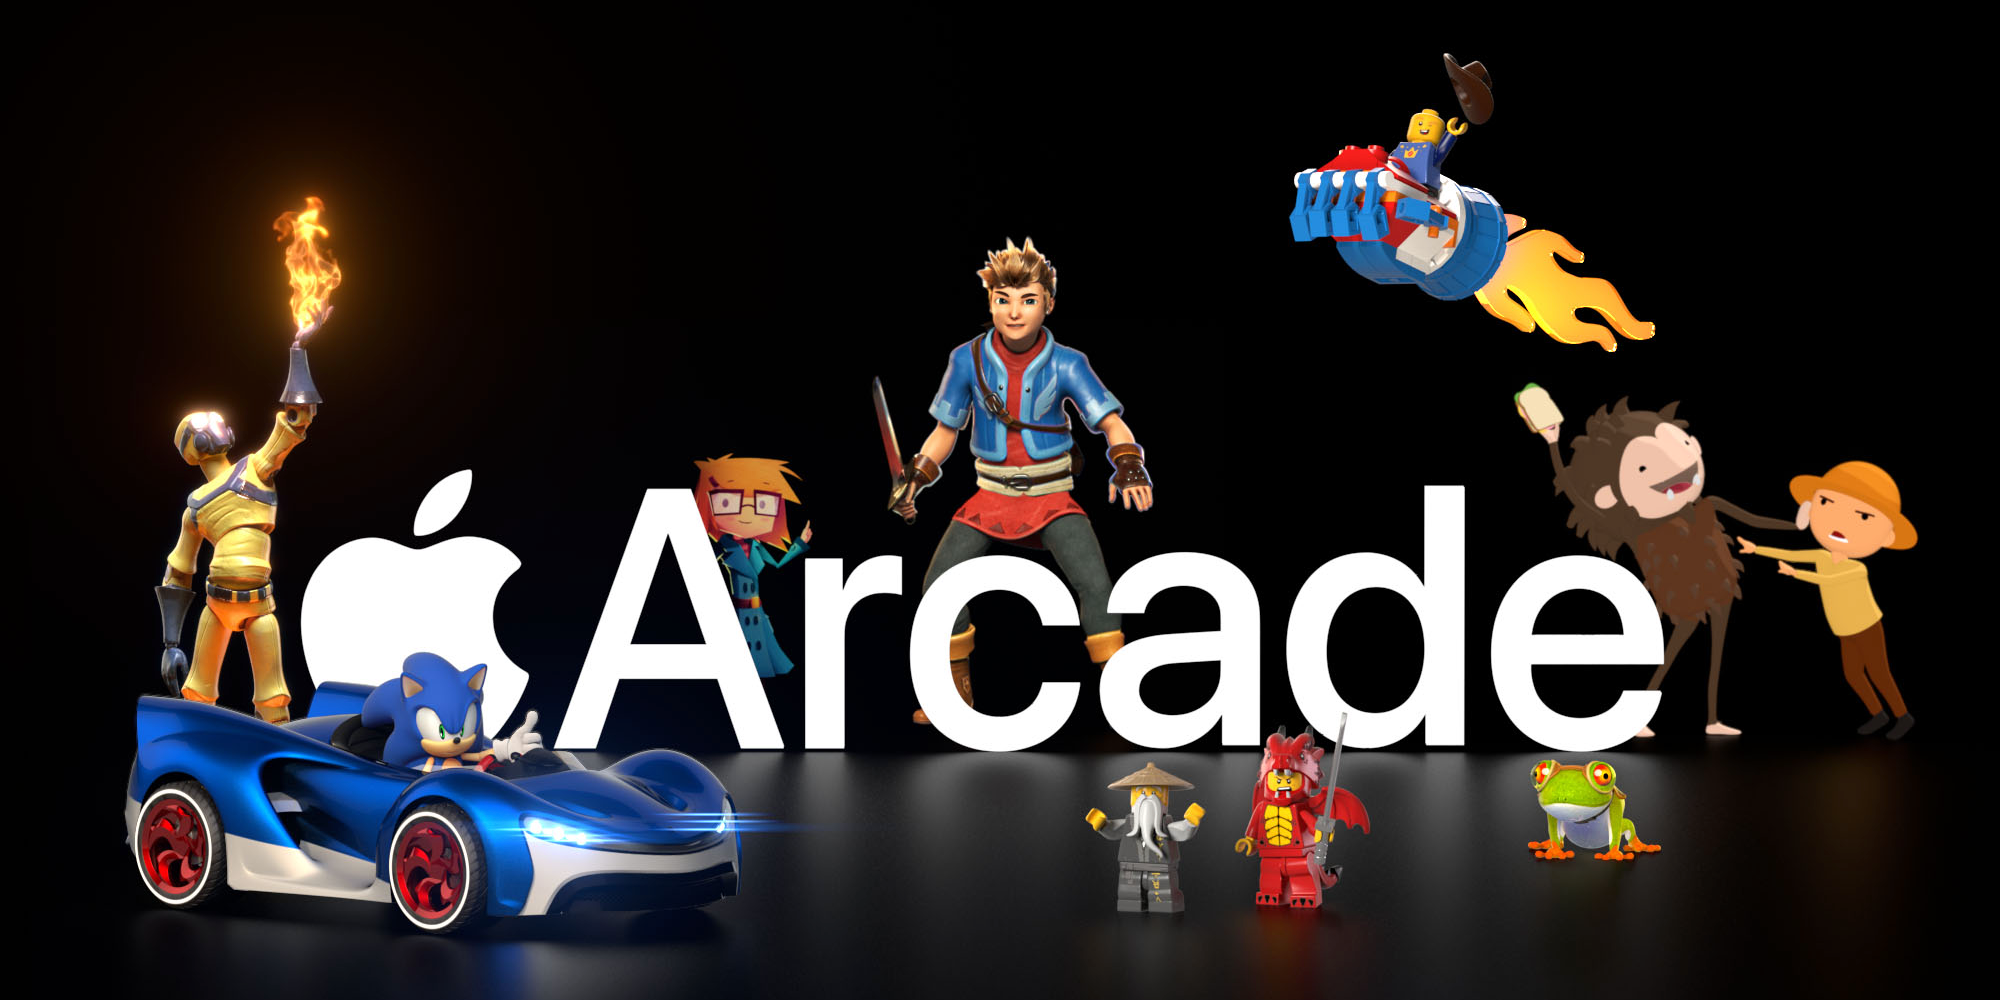 Apple Arcade scores an Apple․com takeover with this must-see, whimsical promotion